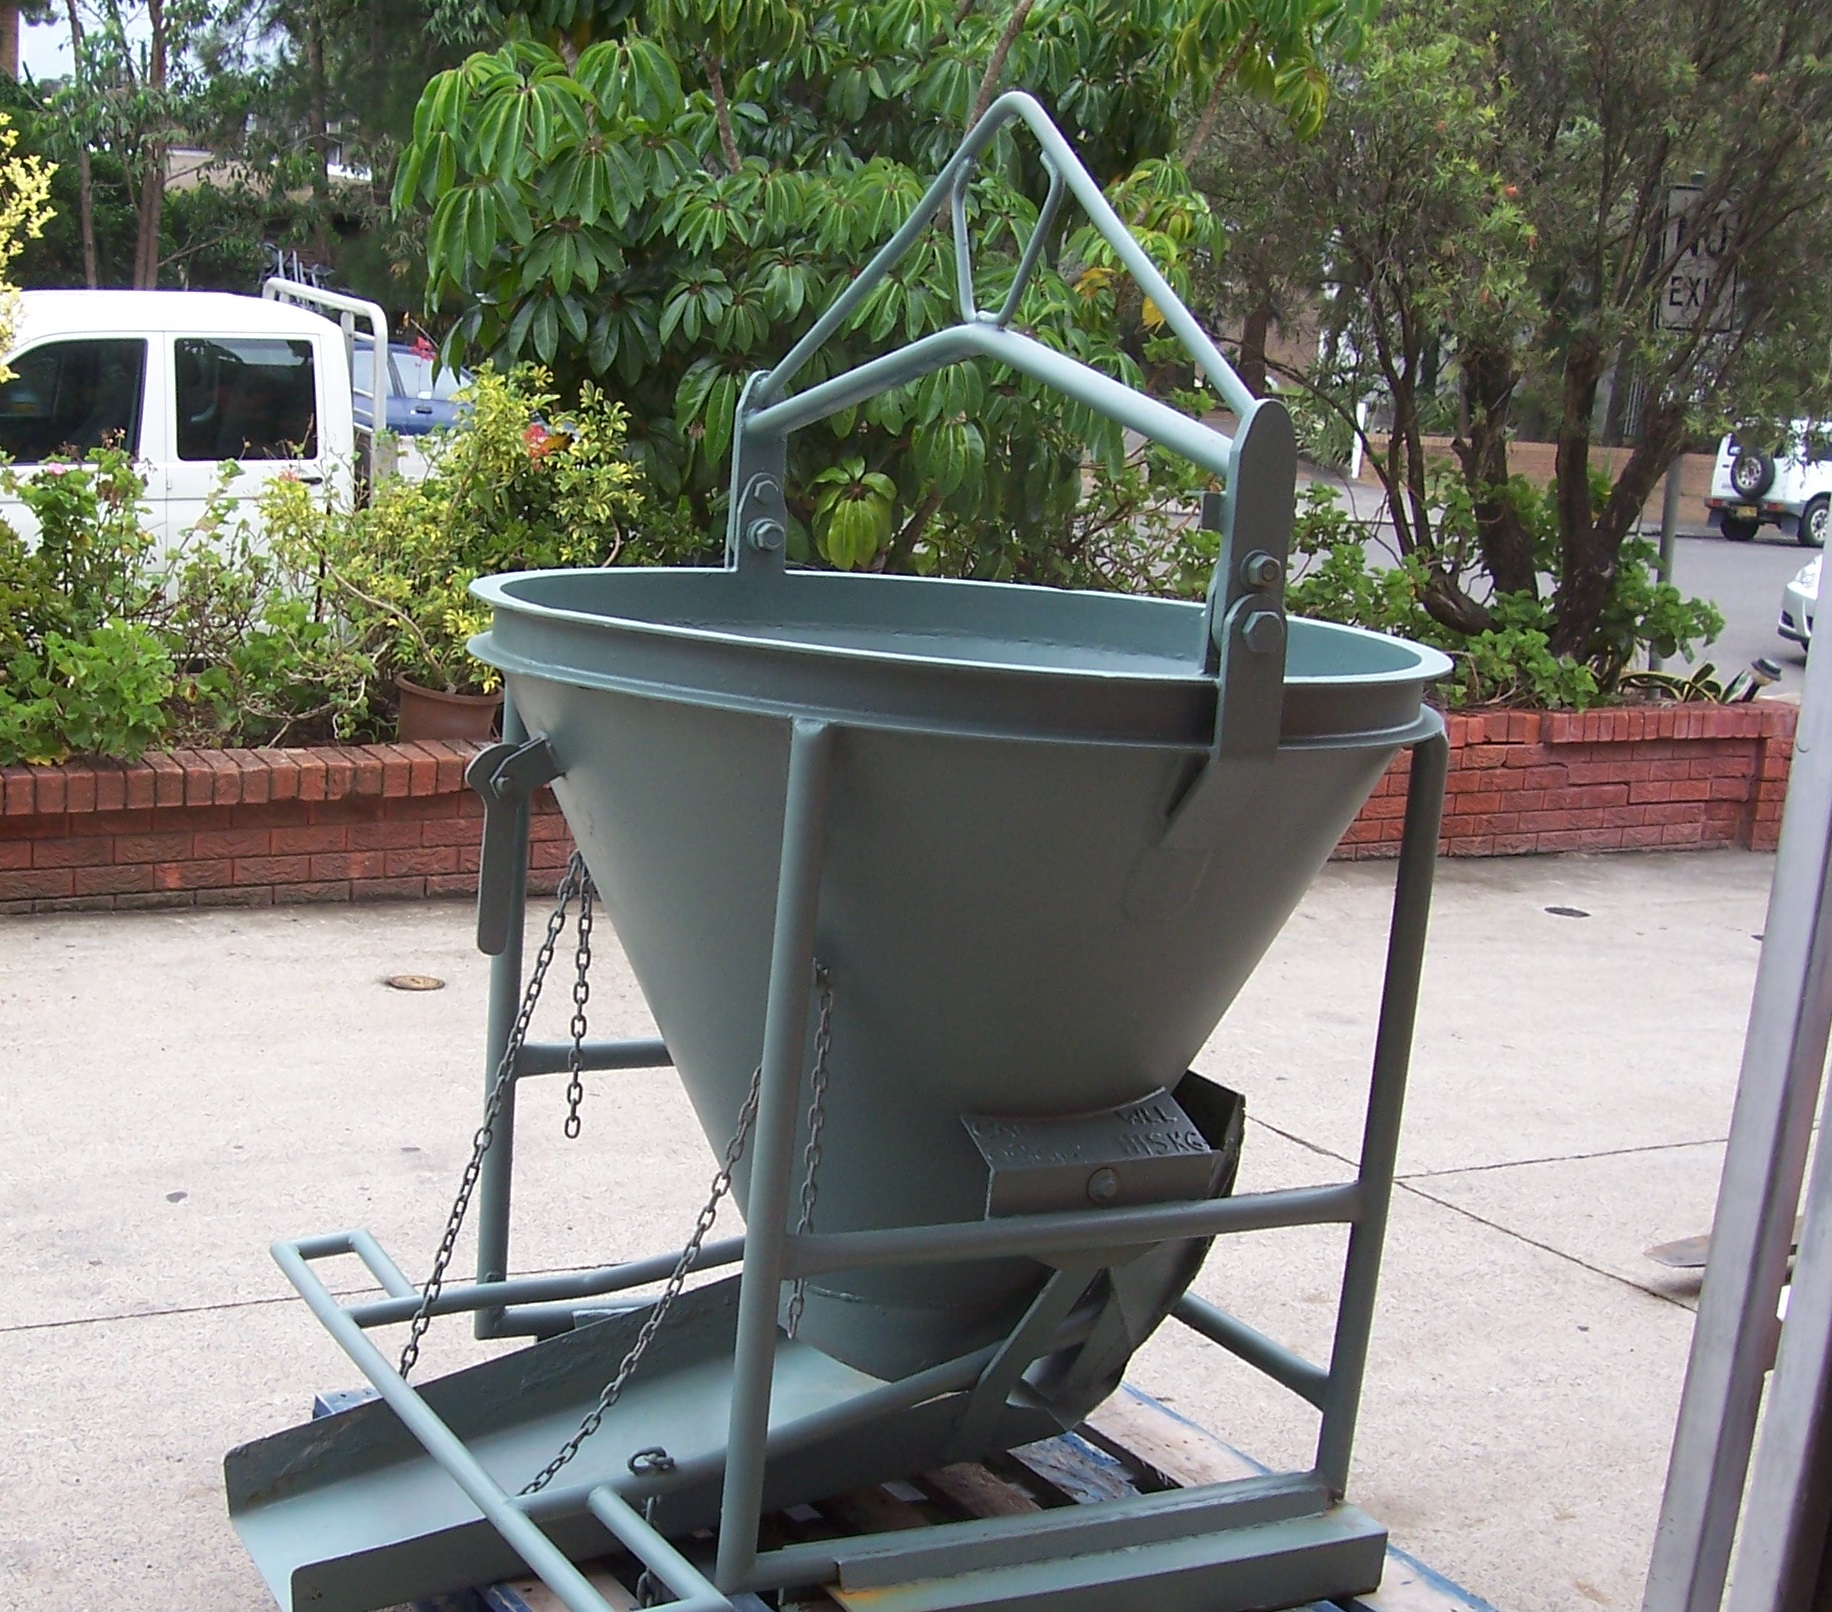 Concrete Kibble 9    Safe Working Load  - 1115 kg  Capacity  - 0.36 cbm  Characteristic  - Smallest of our range, ideal for use where crane lifting capacity is limited.